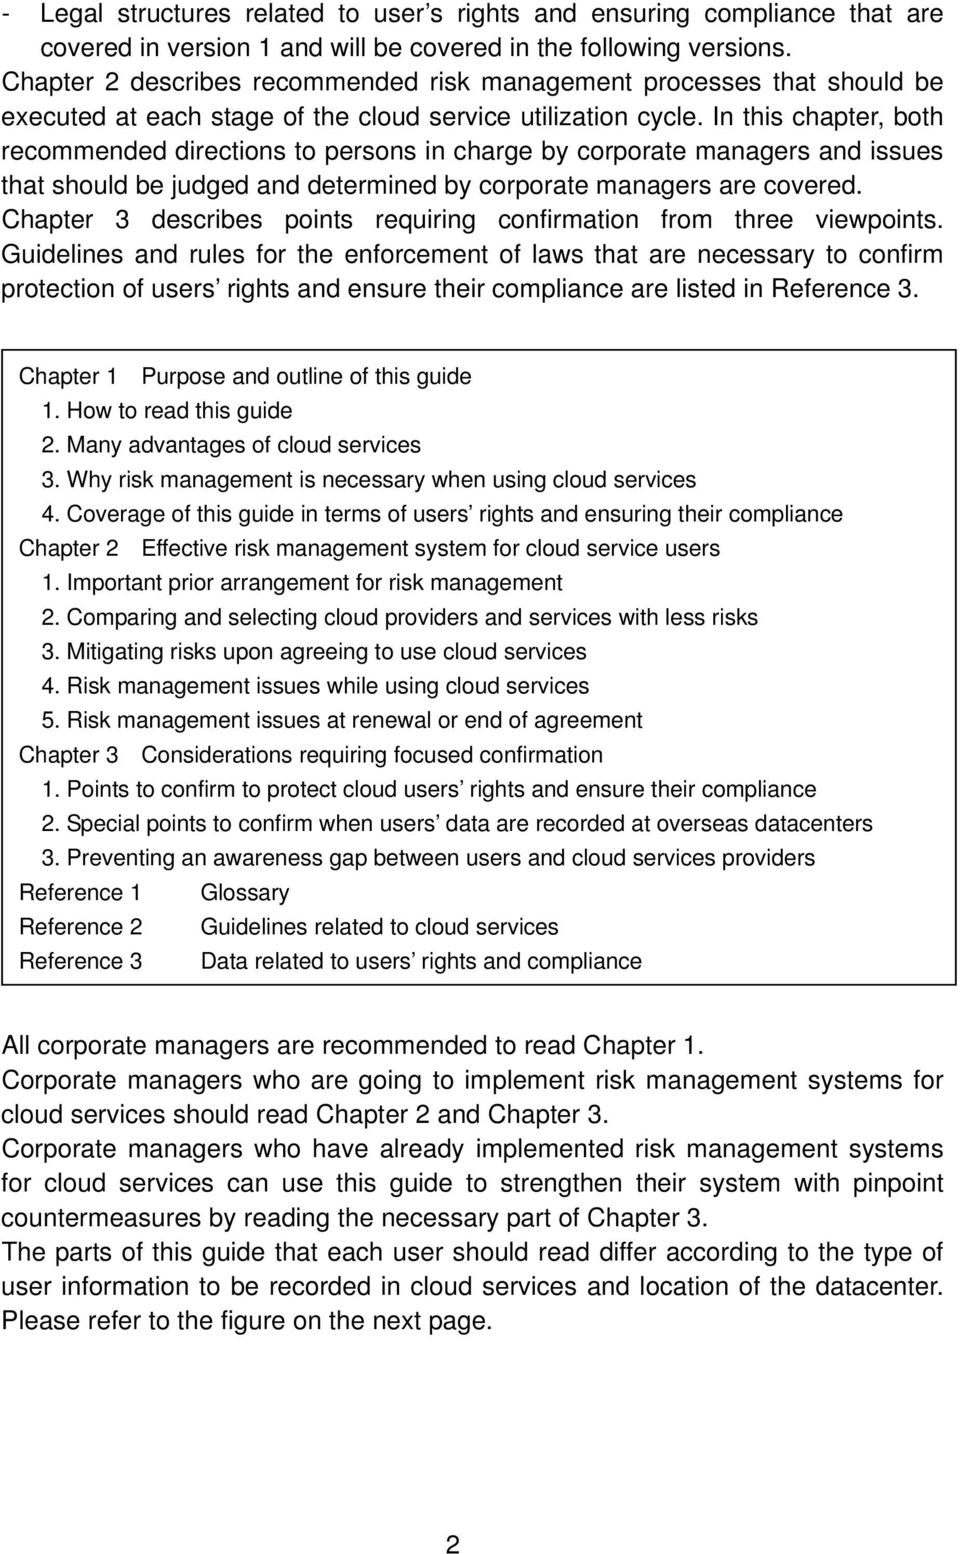 In this chapter, both recommended directions to persons in charge by corporate managers and issues that should be judged and determined by corporate managers are covered.